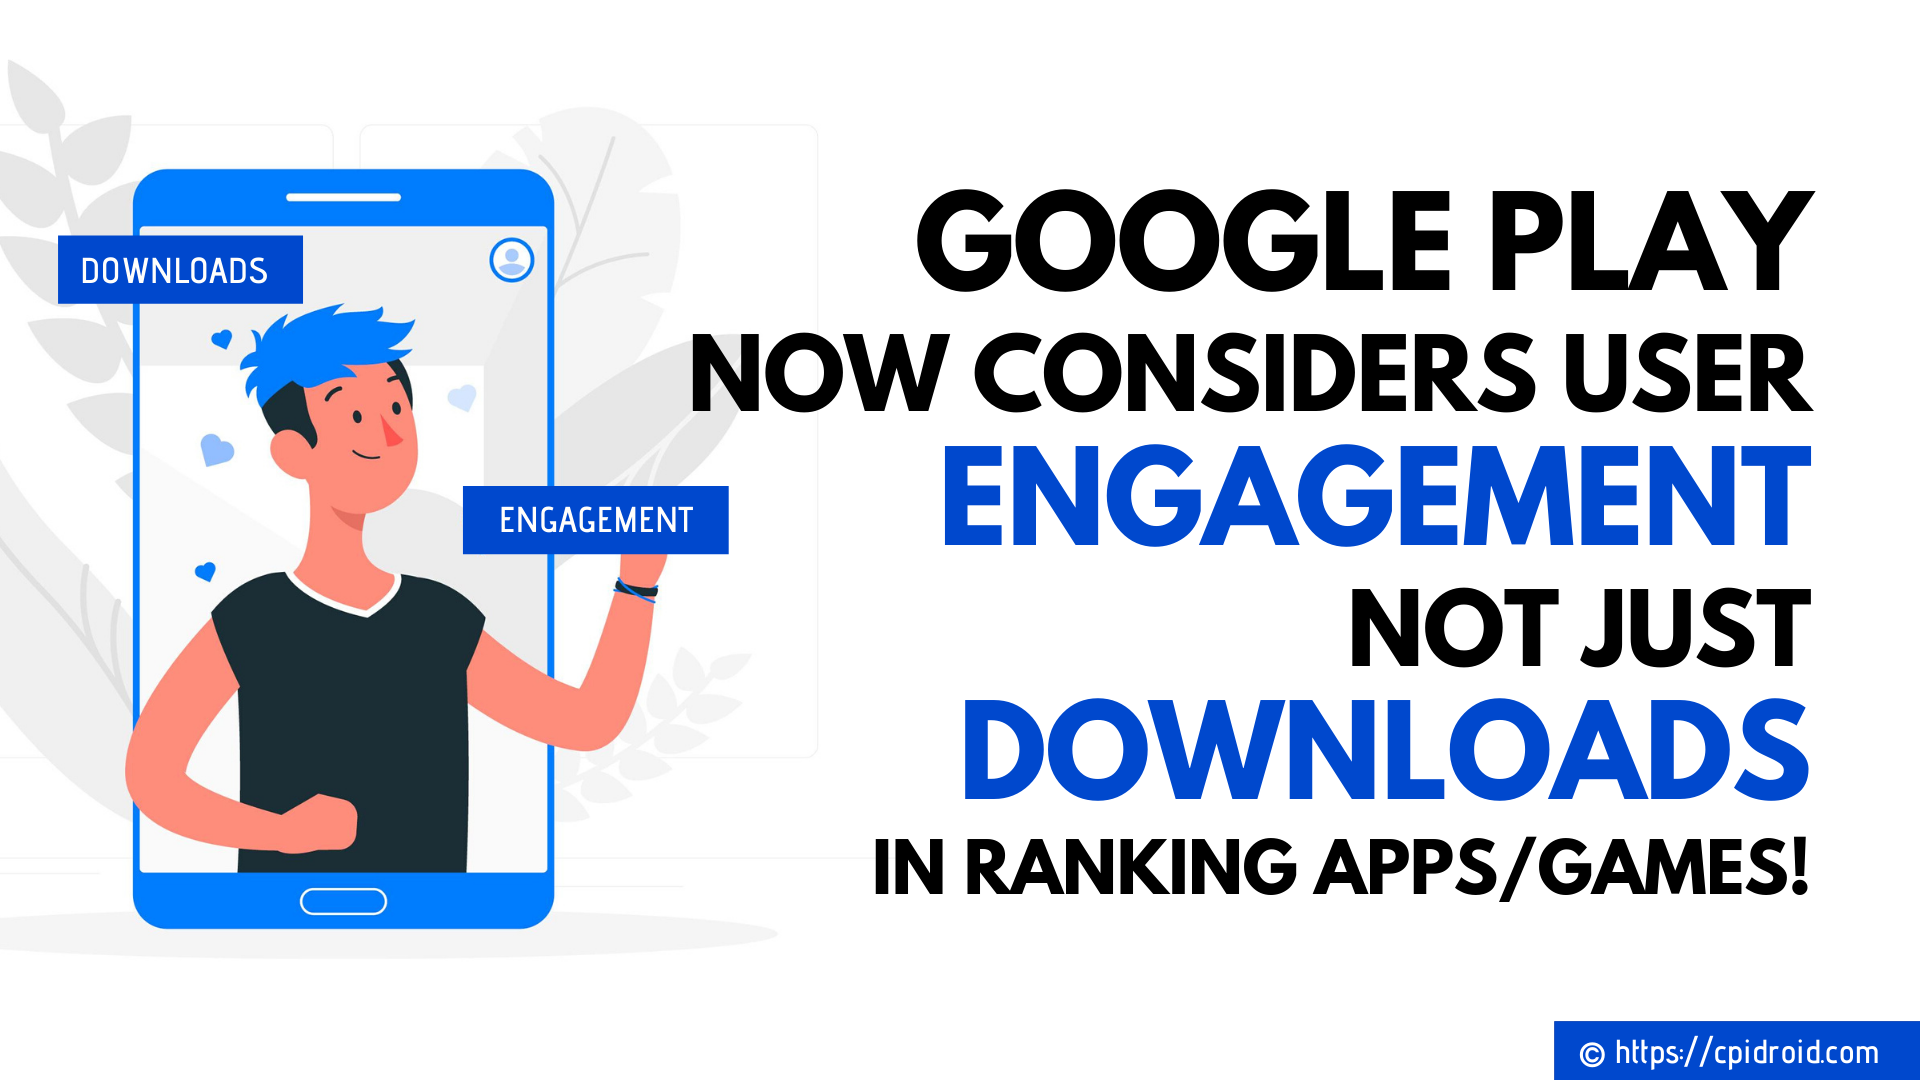 Google Play Now Considers User Engagement, Not just Downloads, in Ranking Apps/Games!